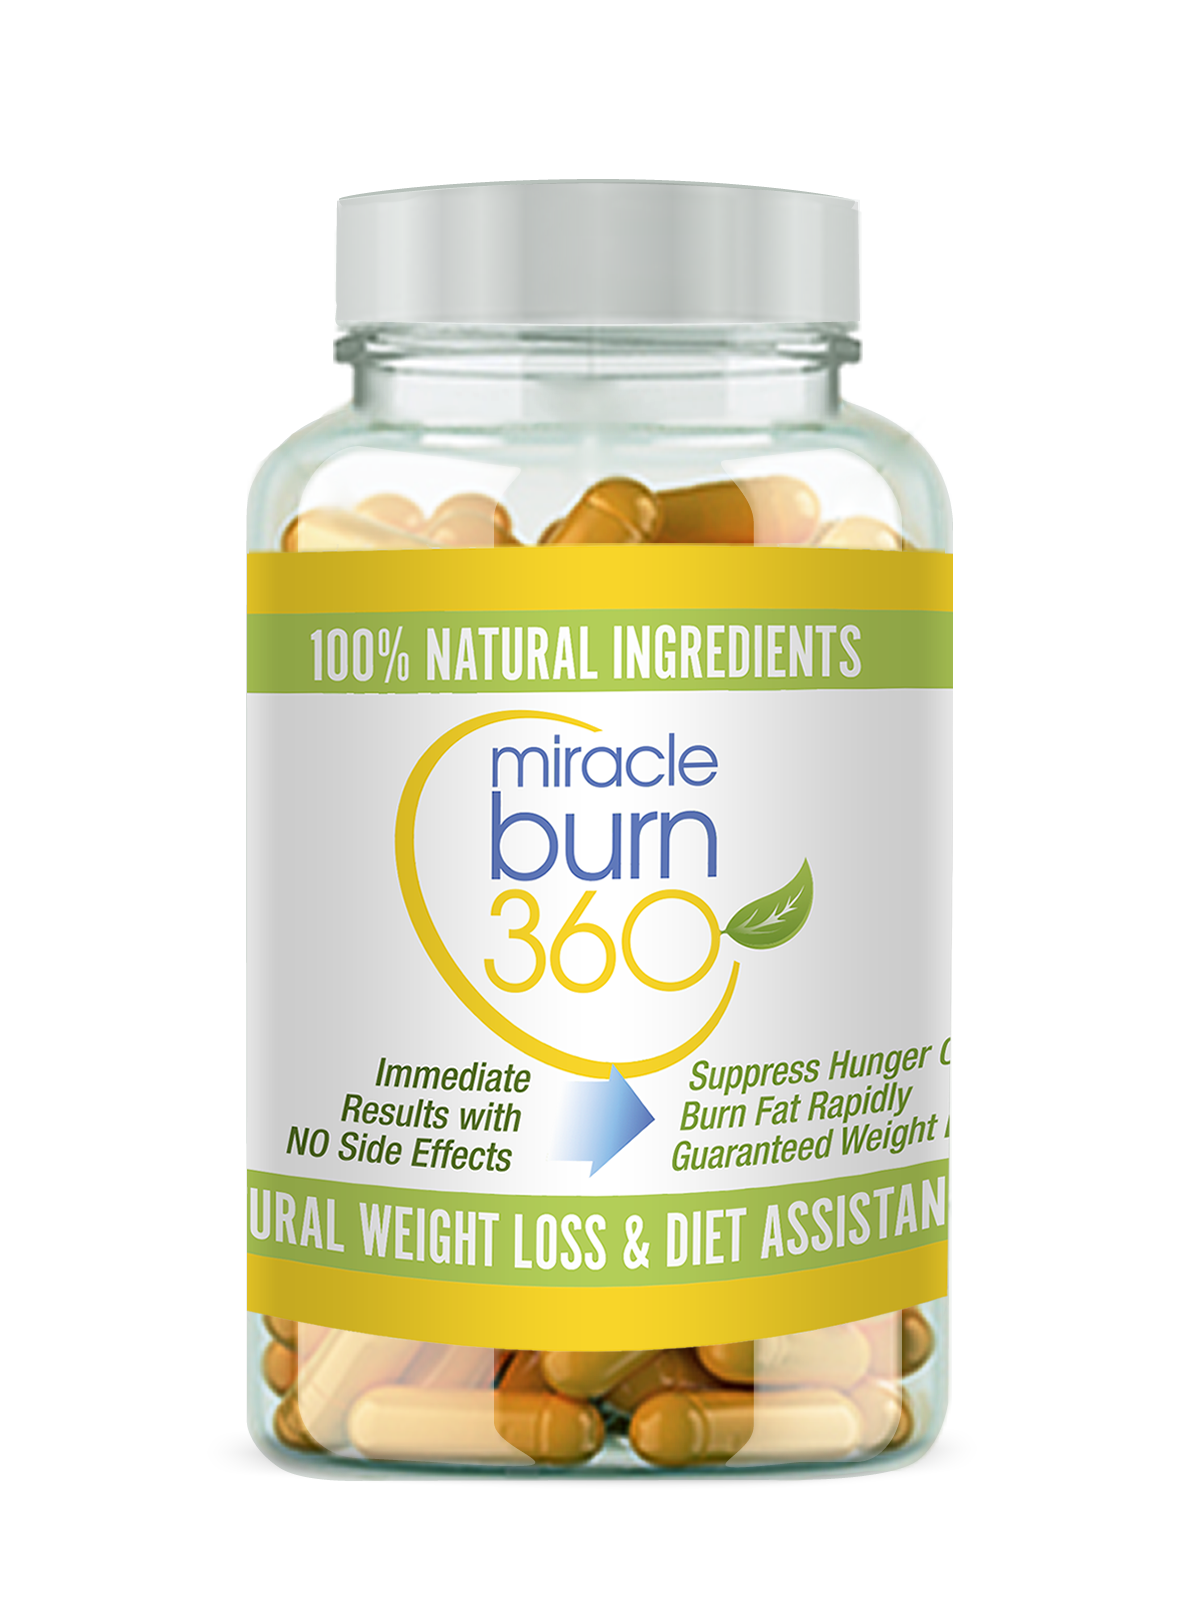 Miracle Burn 360 one a day Weight Loss / Diet pills and Appetite suppressant. s l1600